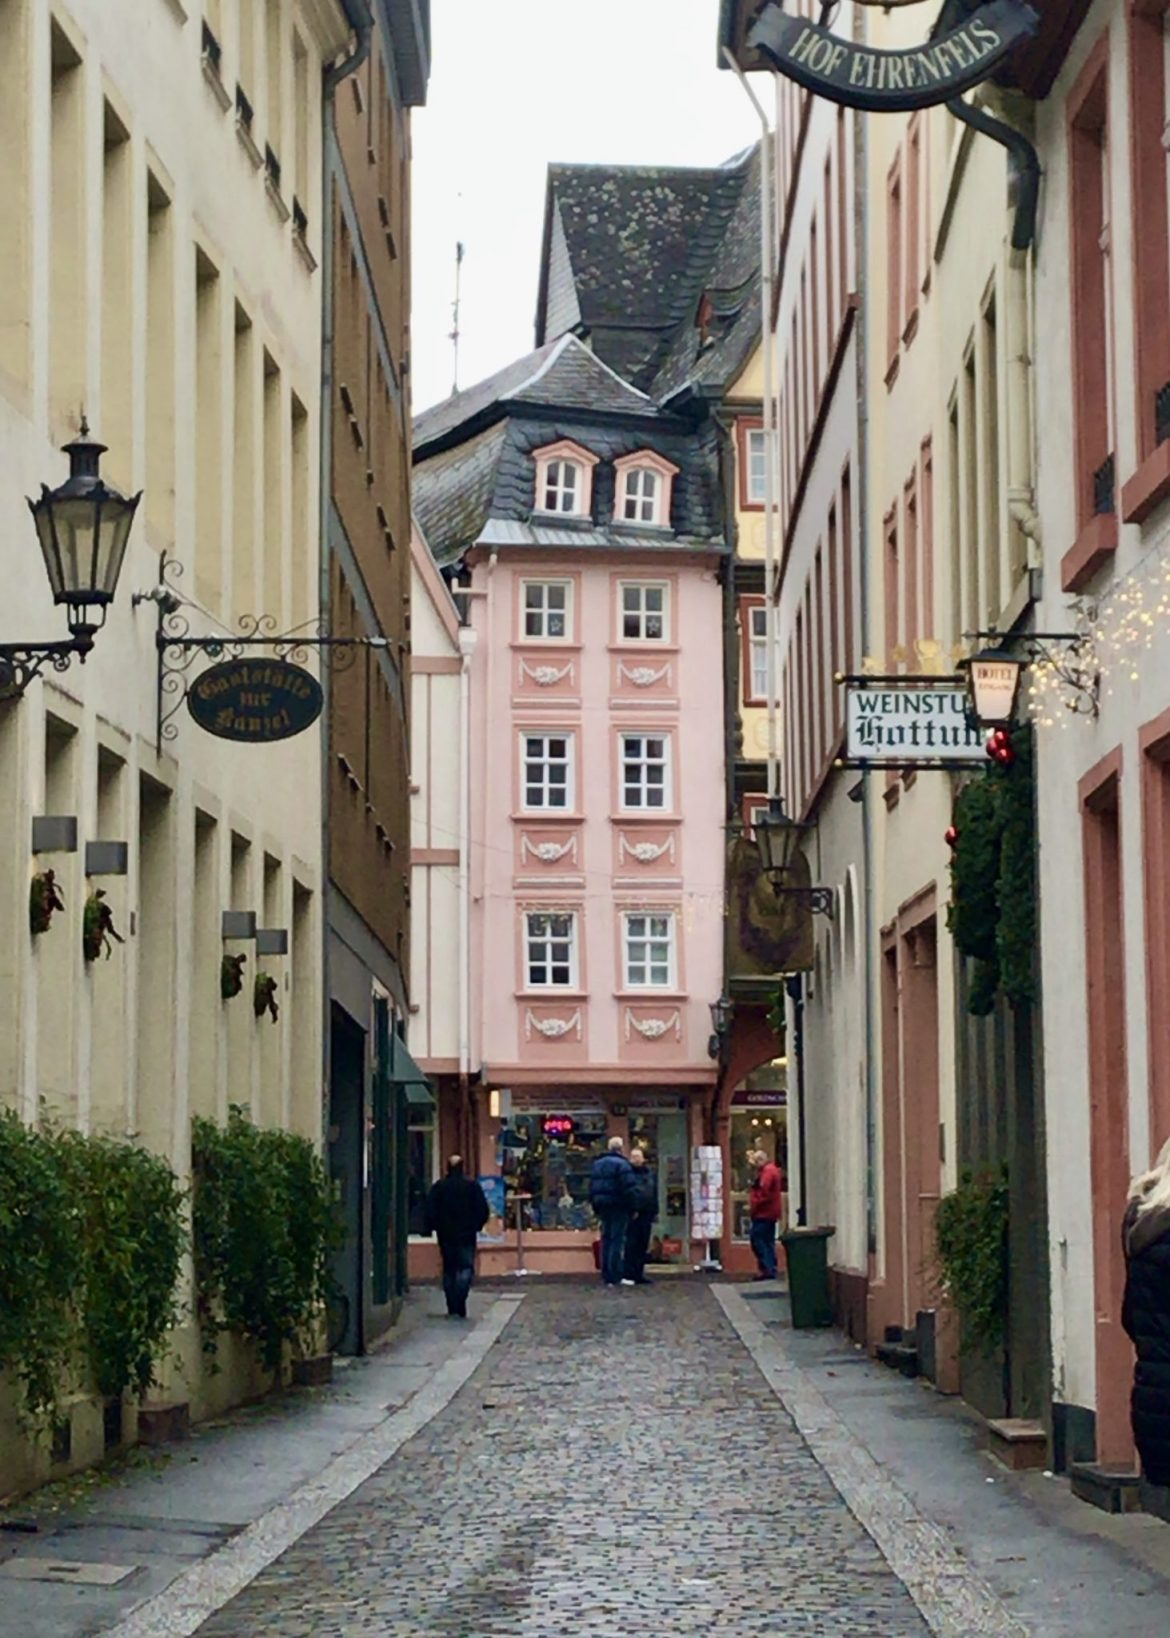 A very tall narrow pink house at the end of a cobbled street